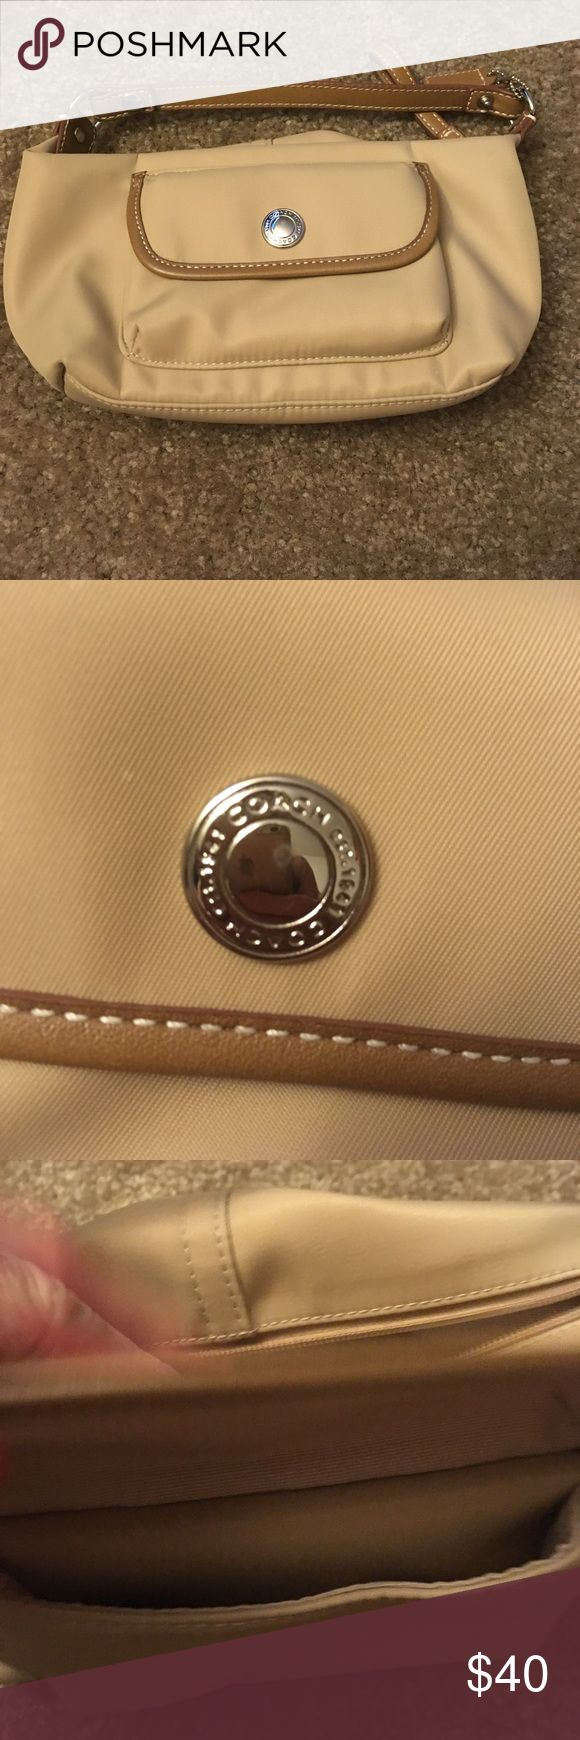 Coach clutch Super cute Coach clutch with leather details. Used and in very nice condition. Perfect for a night out! Coach Bags Clutches & Wristlets